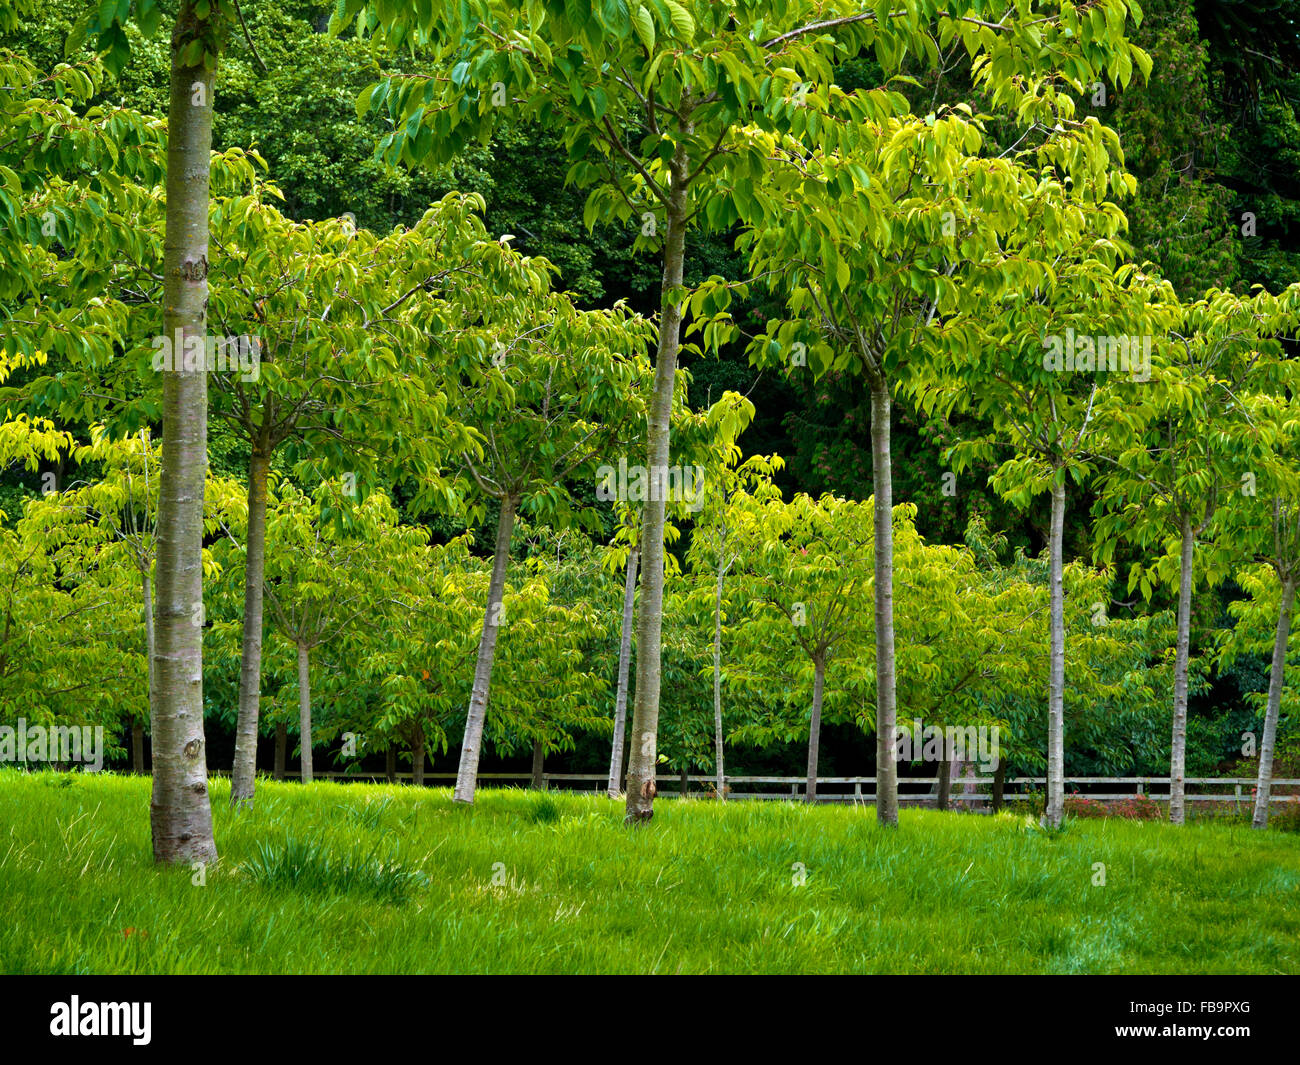 The Cherry Orchard at Alnwick Gardens in Northumberland England UK designed by Jacques and Peter Wirtz - Stock Image